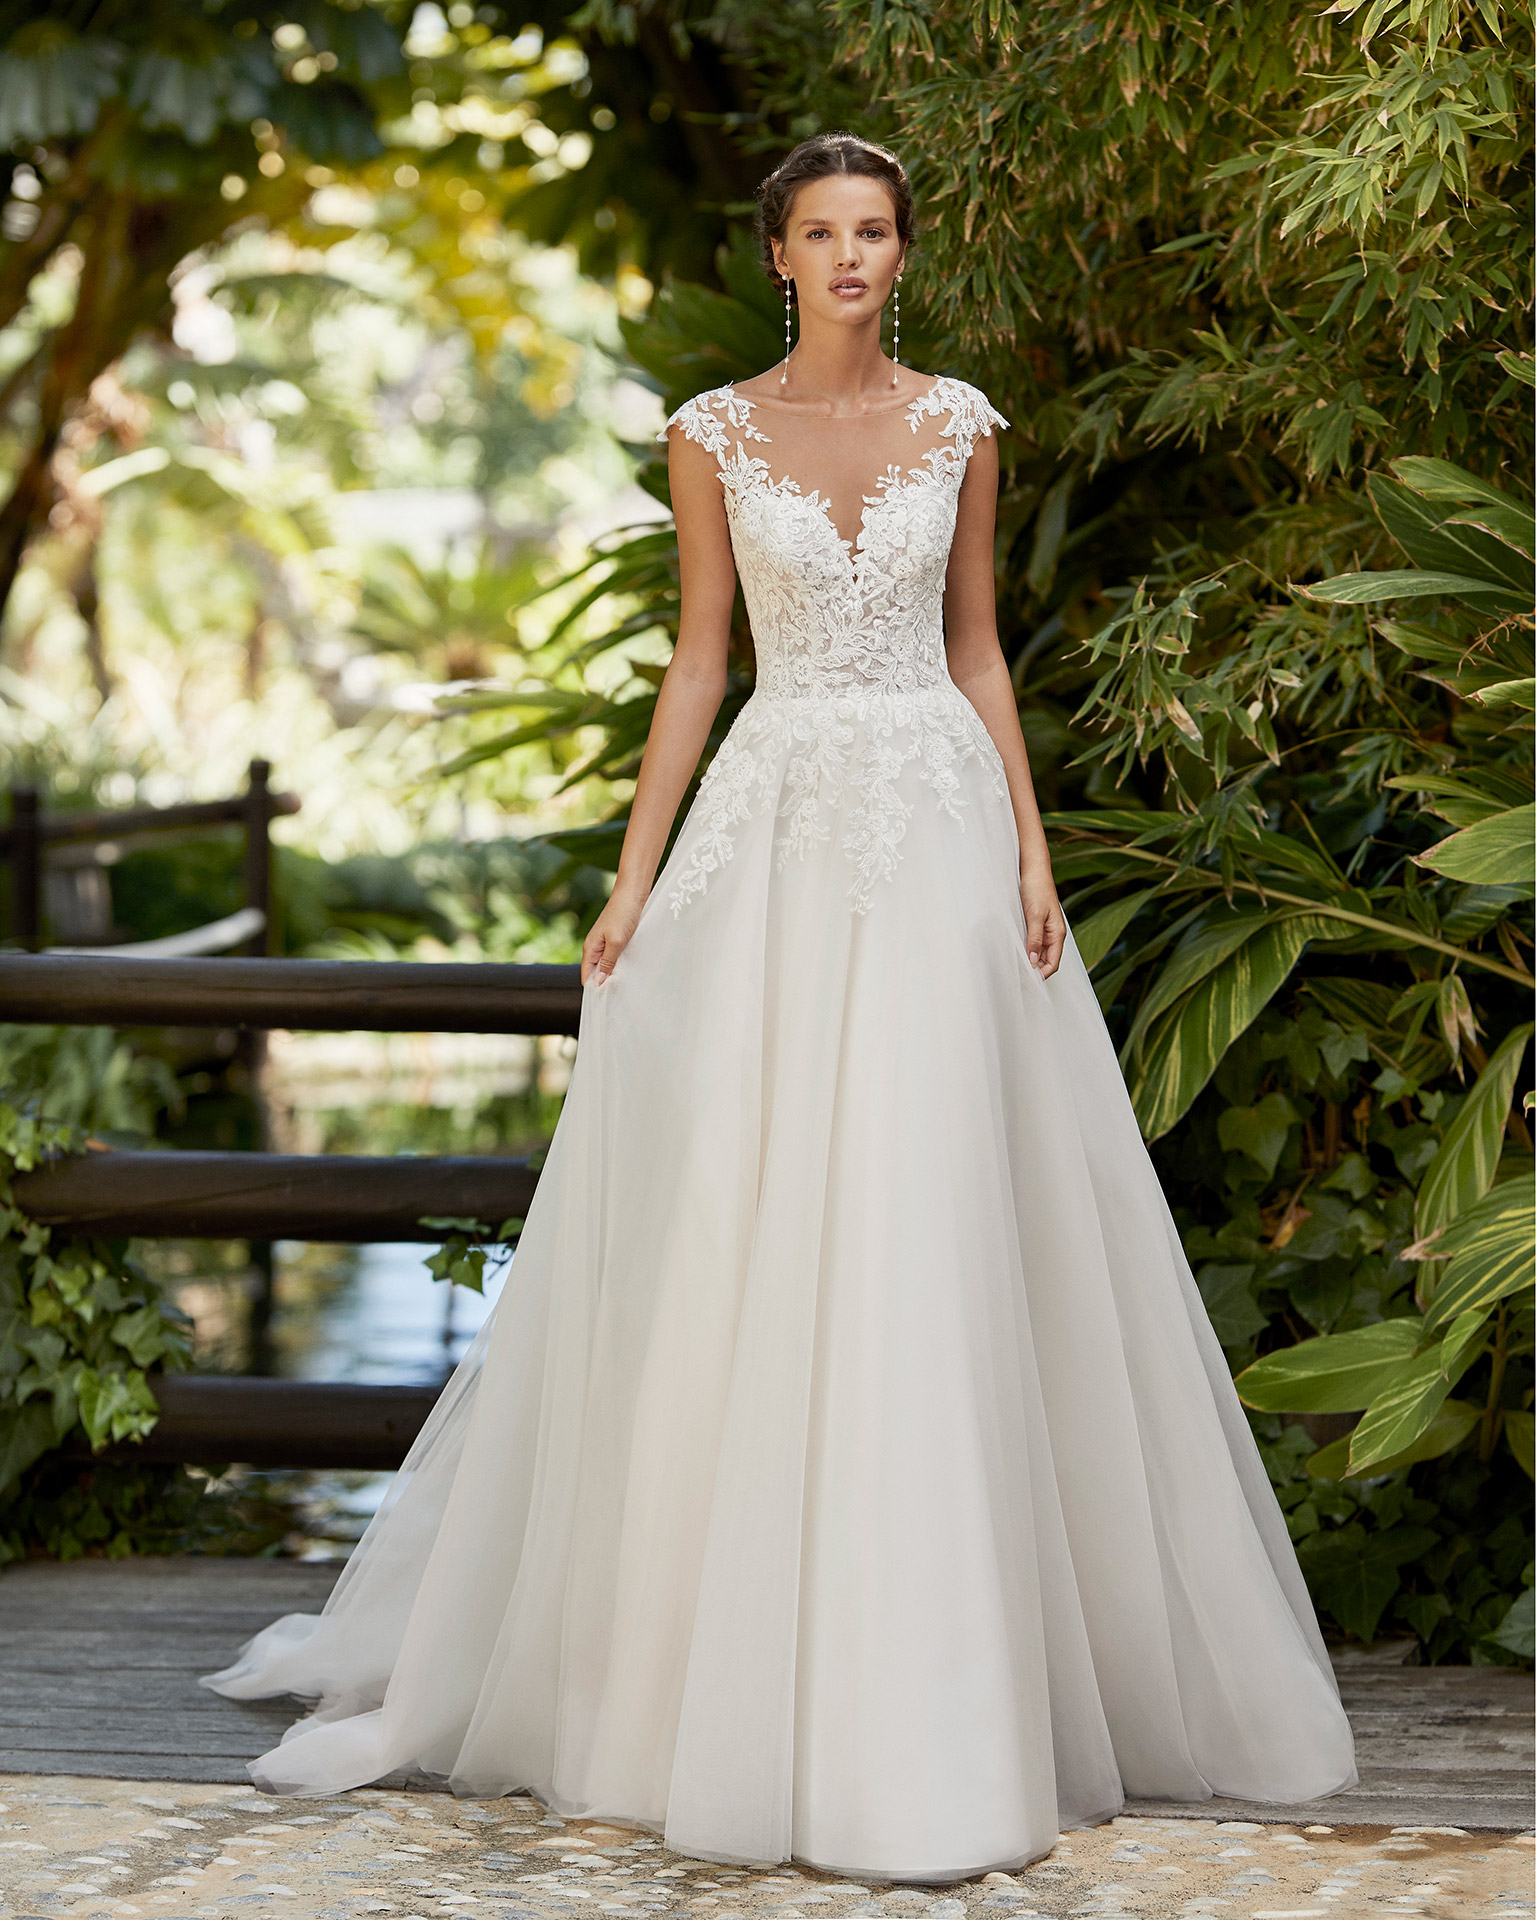 Adriana Alier - Found at Bridal Connection San Antonio